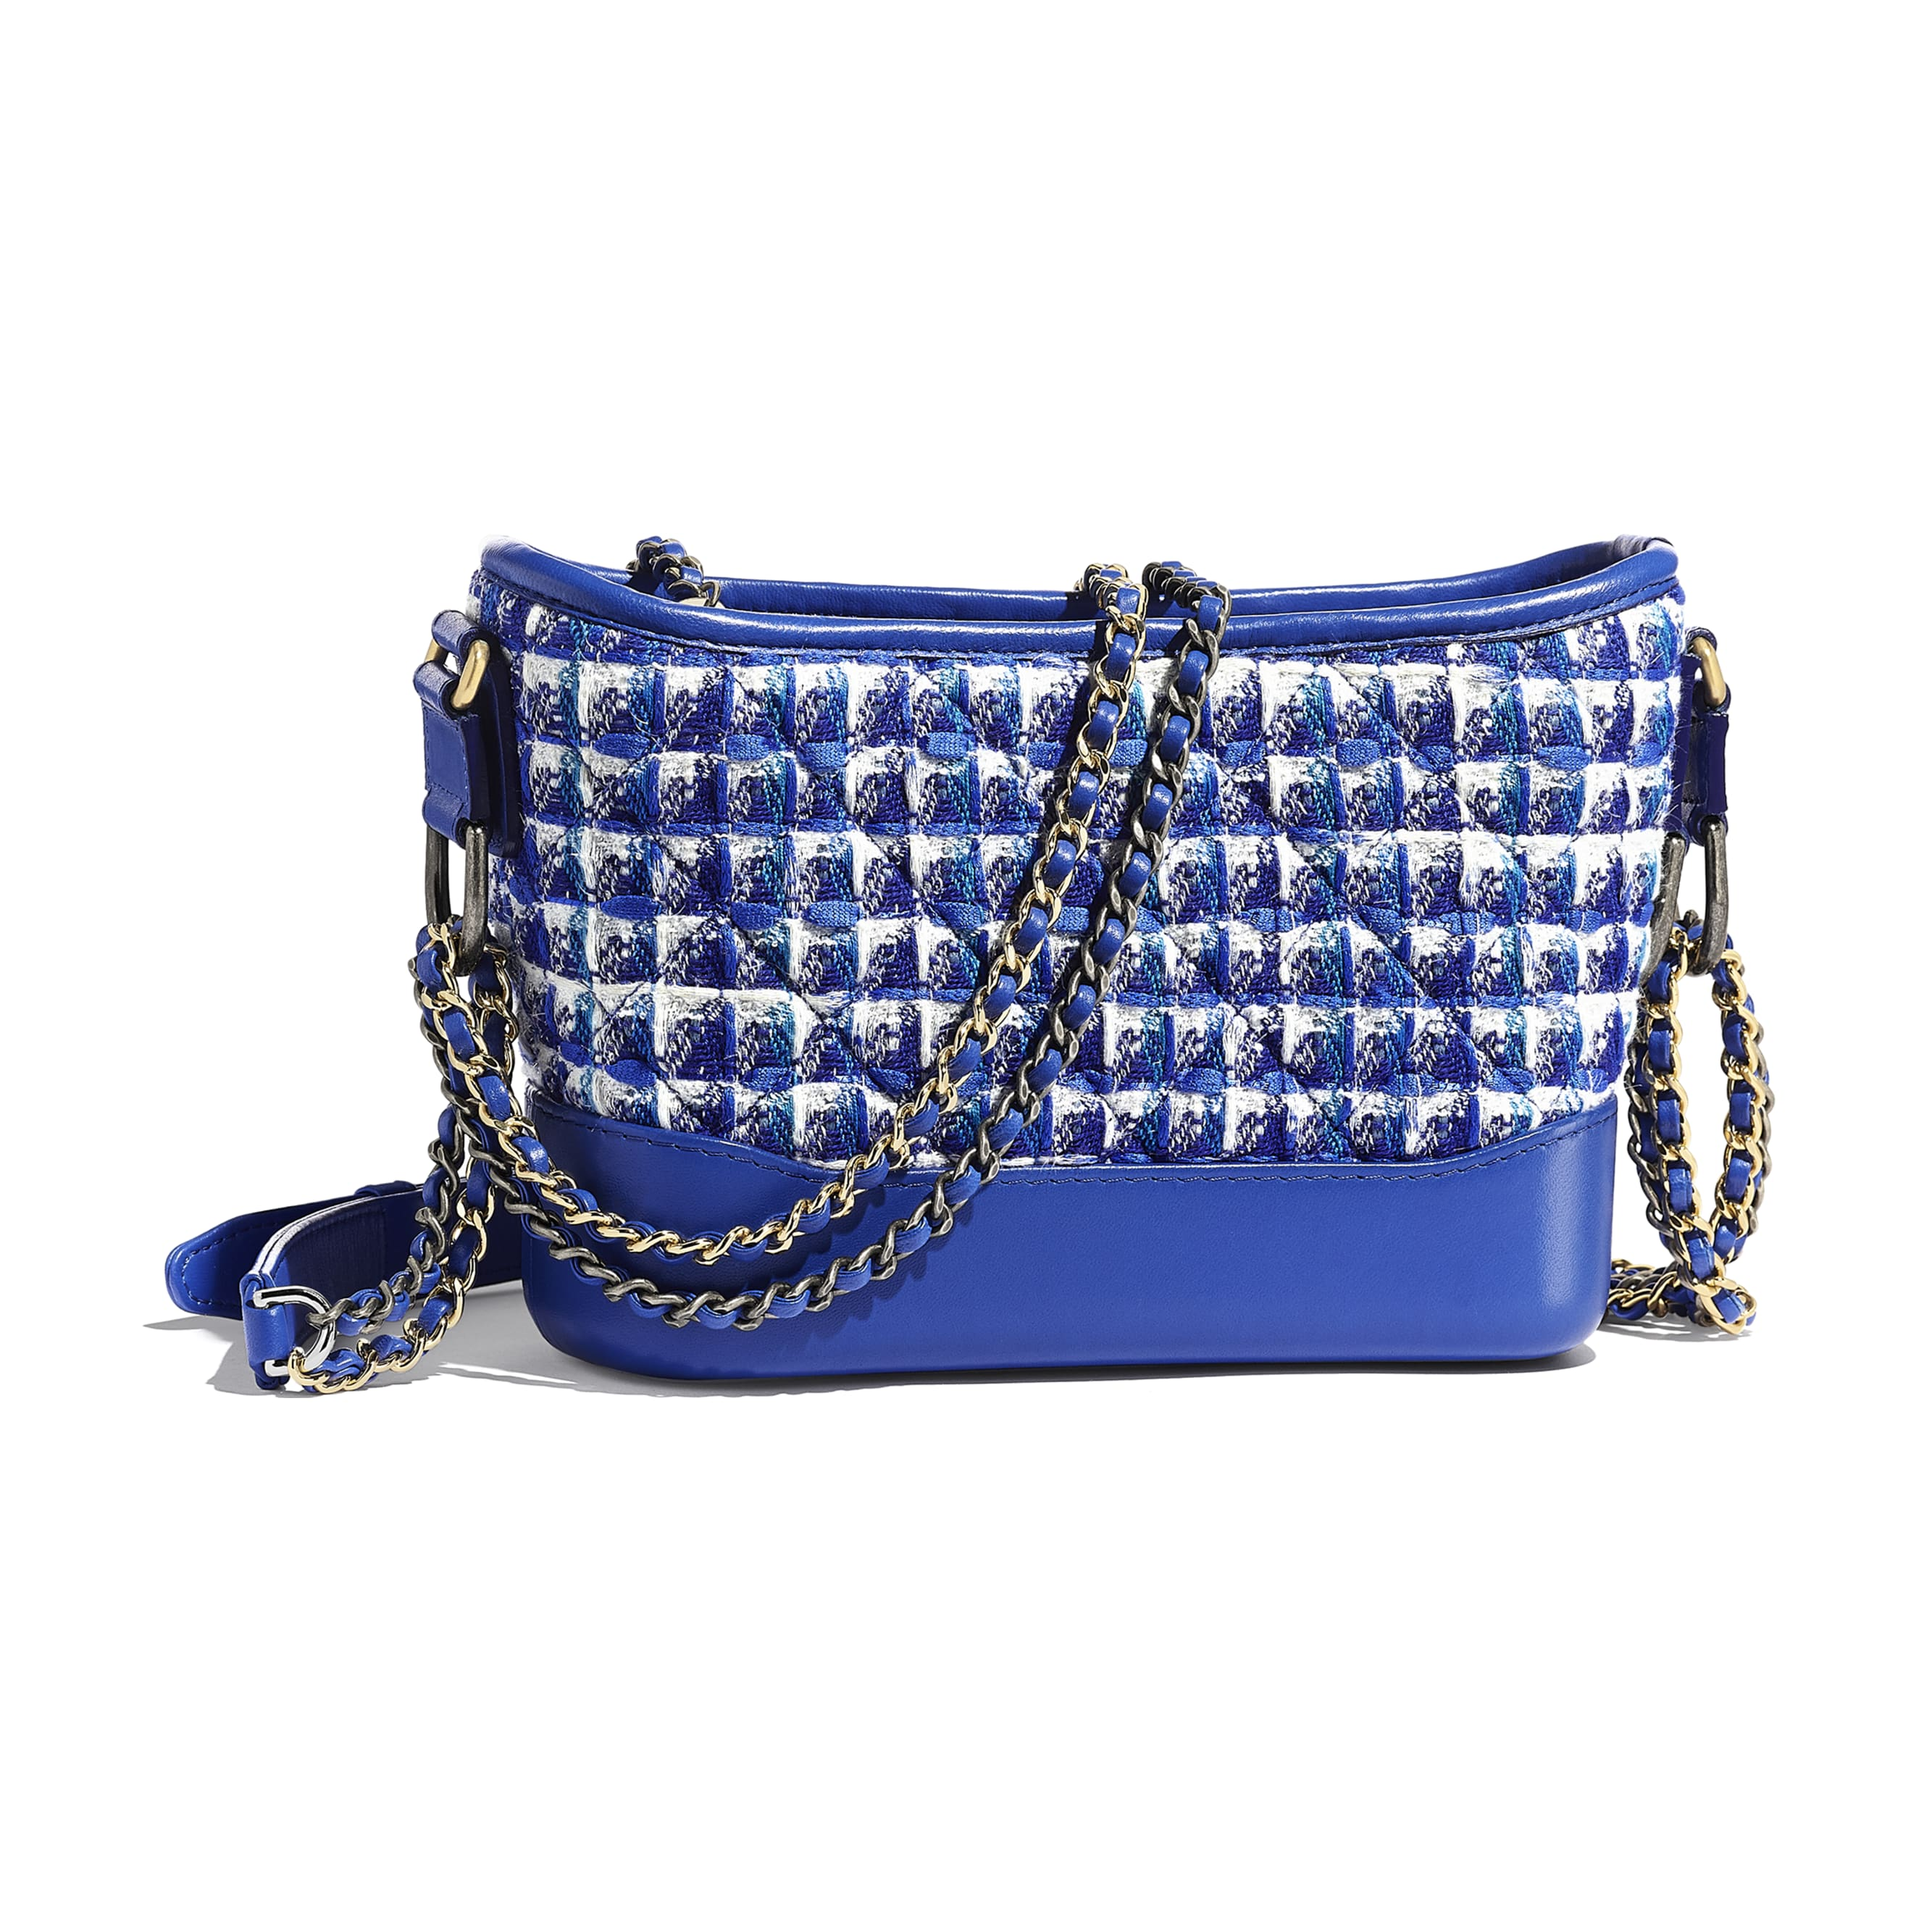 CHANEL'S GABRIELLE Small Hobo Bag - Blue, White & Silver - Tweed, Calfskin, Silver-Tone & Gold-Tone Metal - CHANEL - Alternative view - see standard sized version